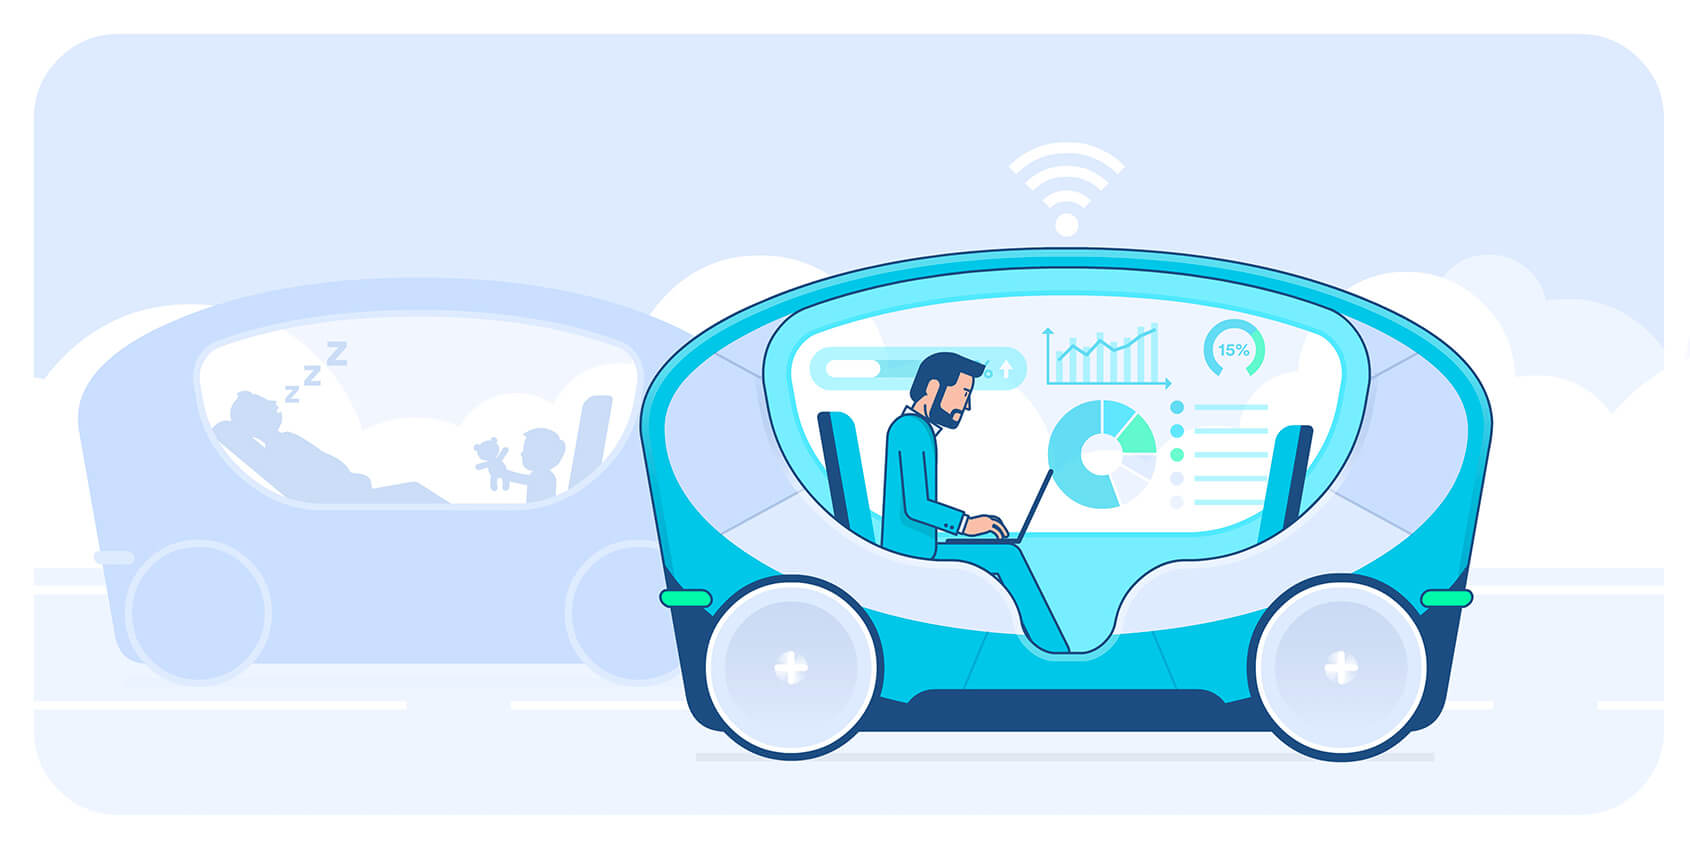 Driverless cars: how do we spend our time if we don't need to drive?